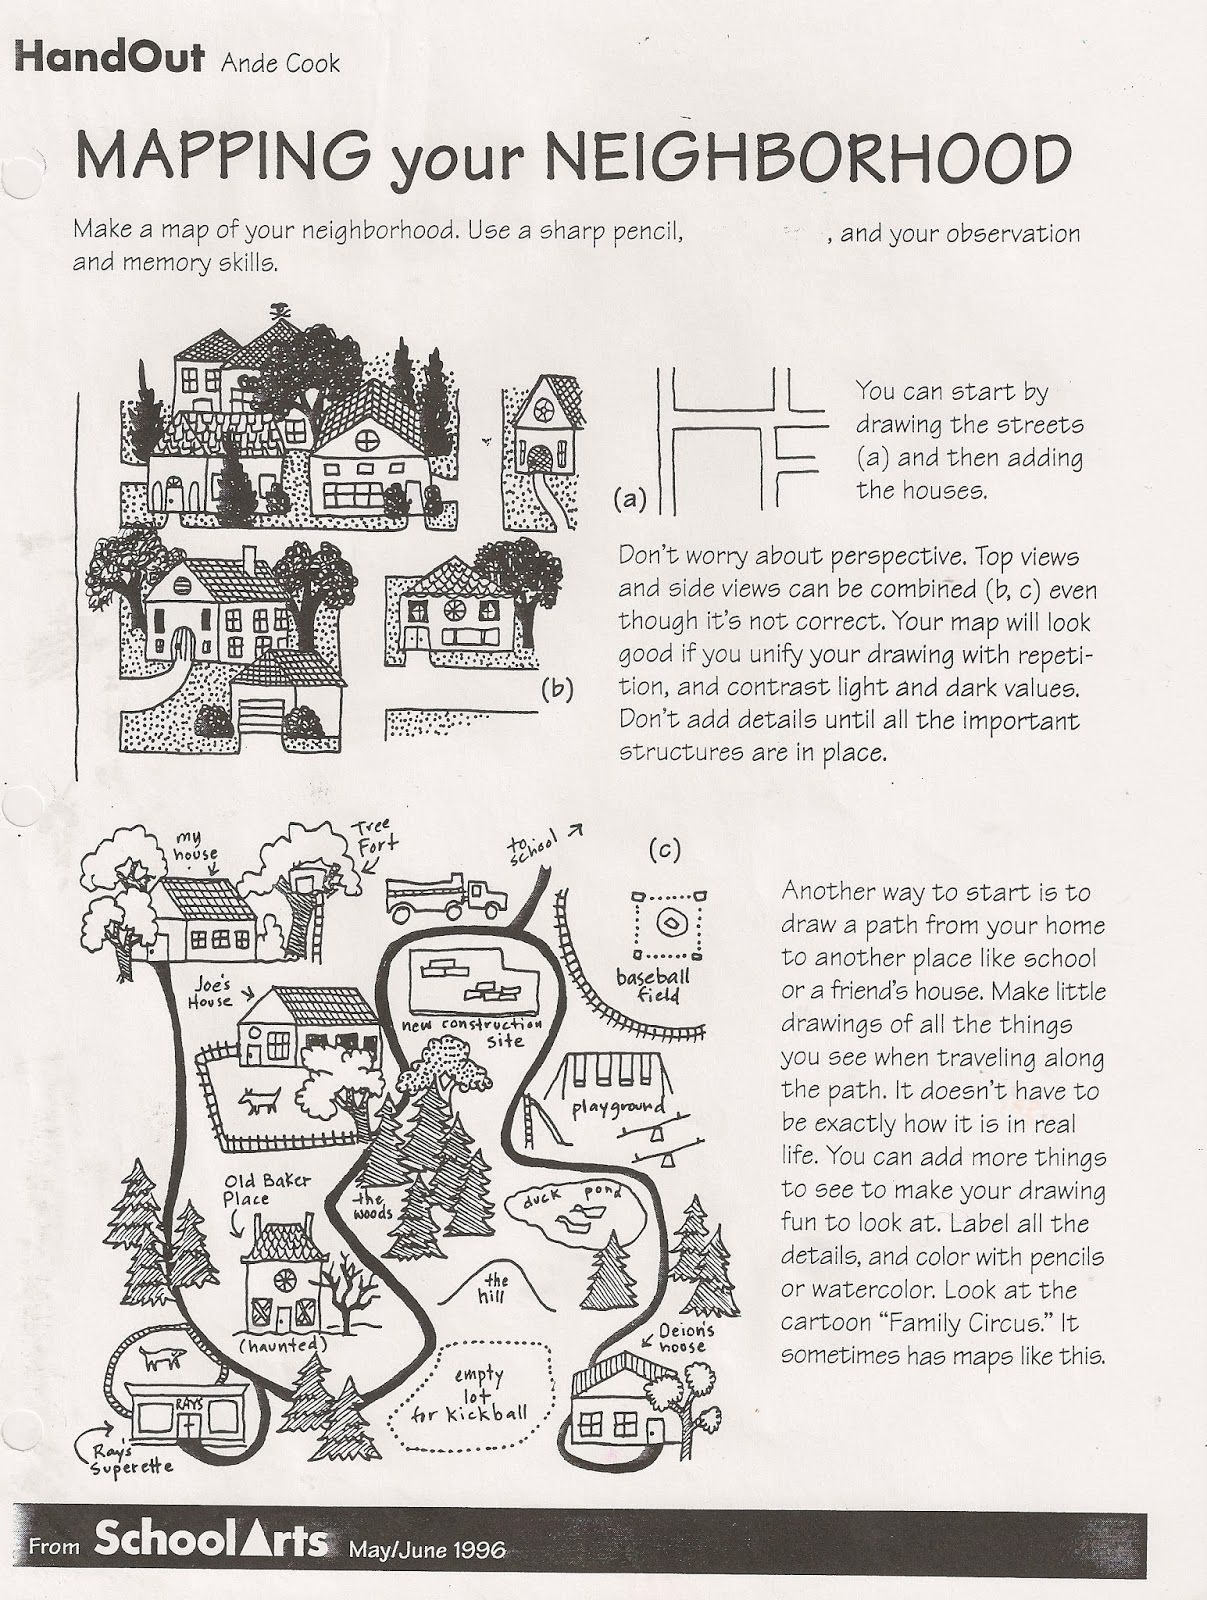 Free: Ande Cook's Mapping your Neighborhood handout and